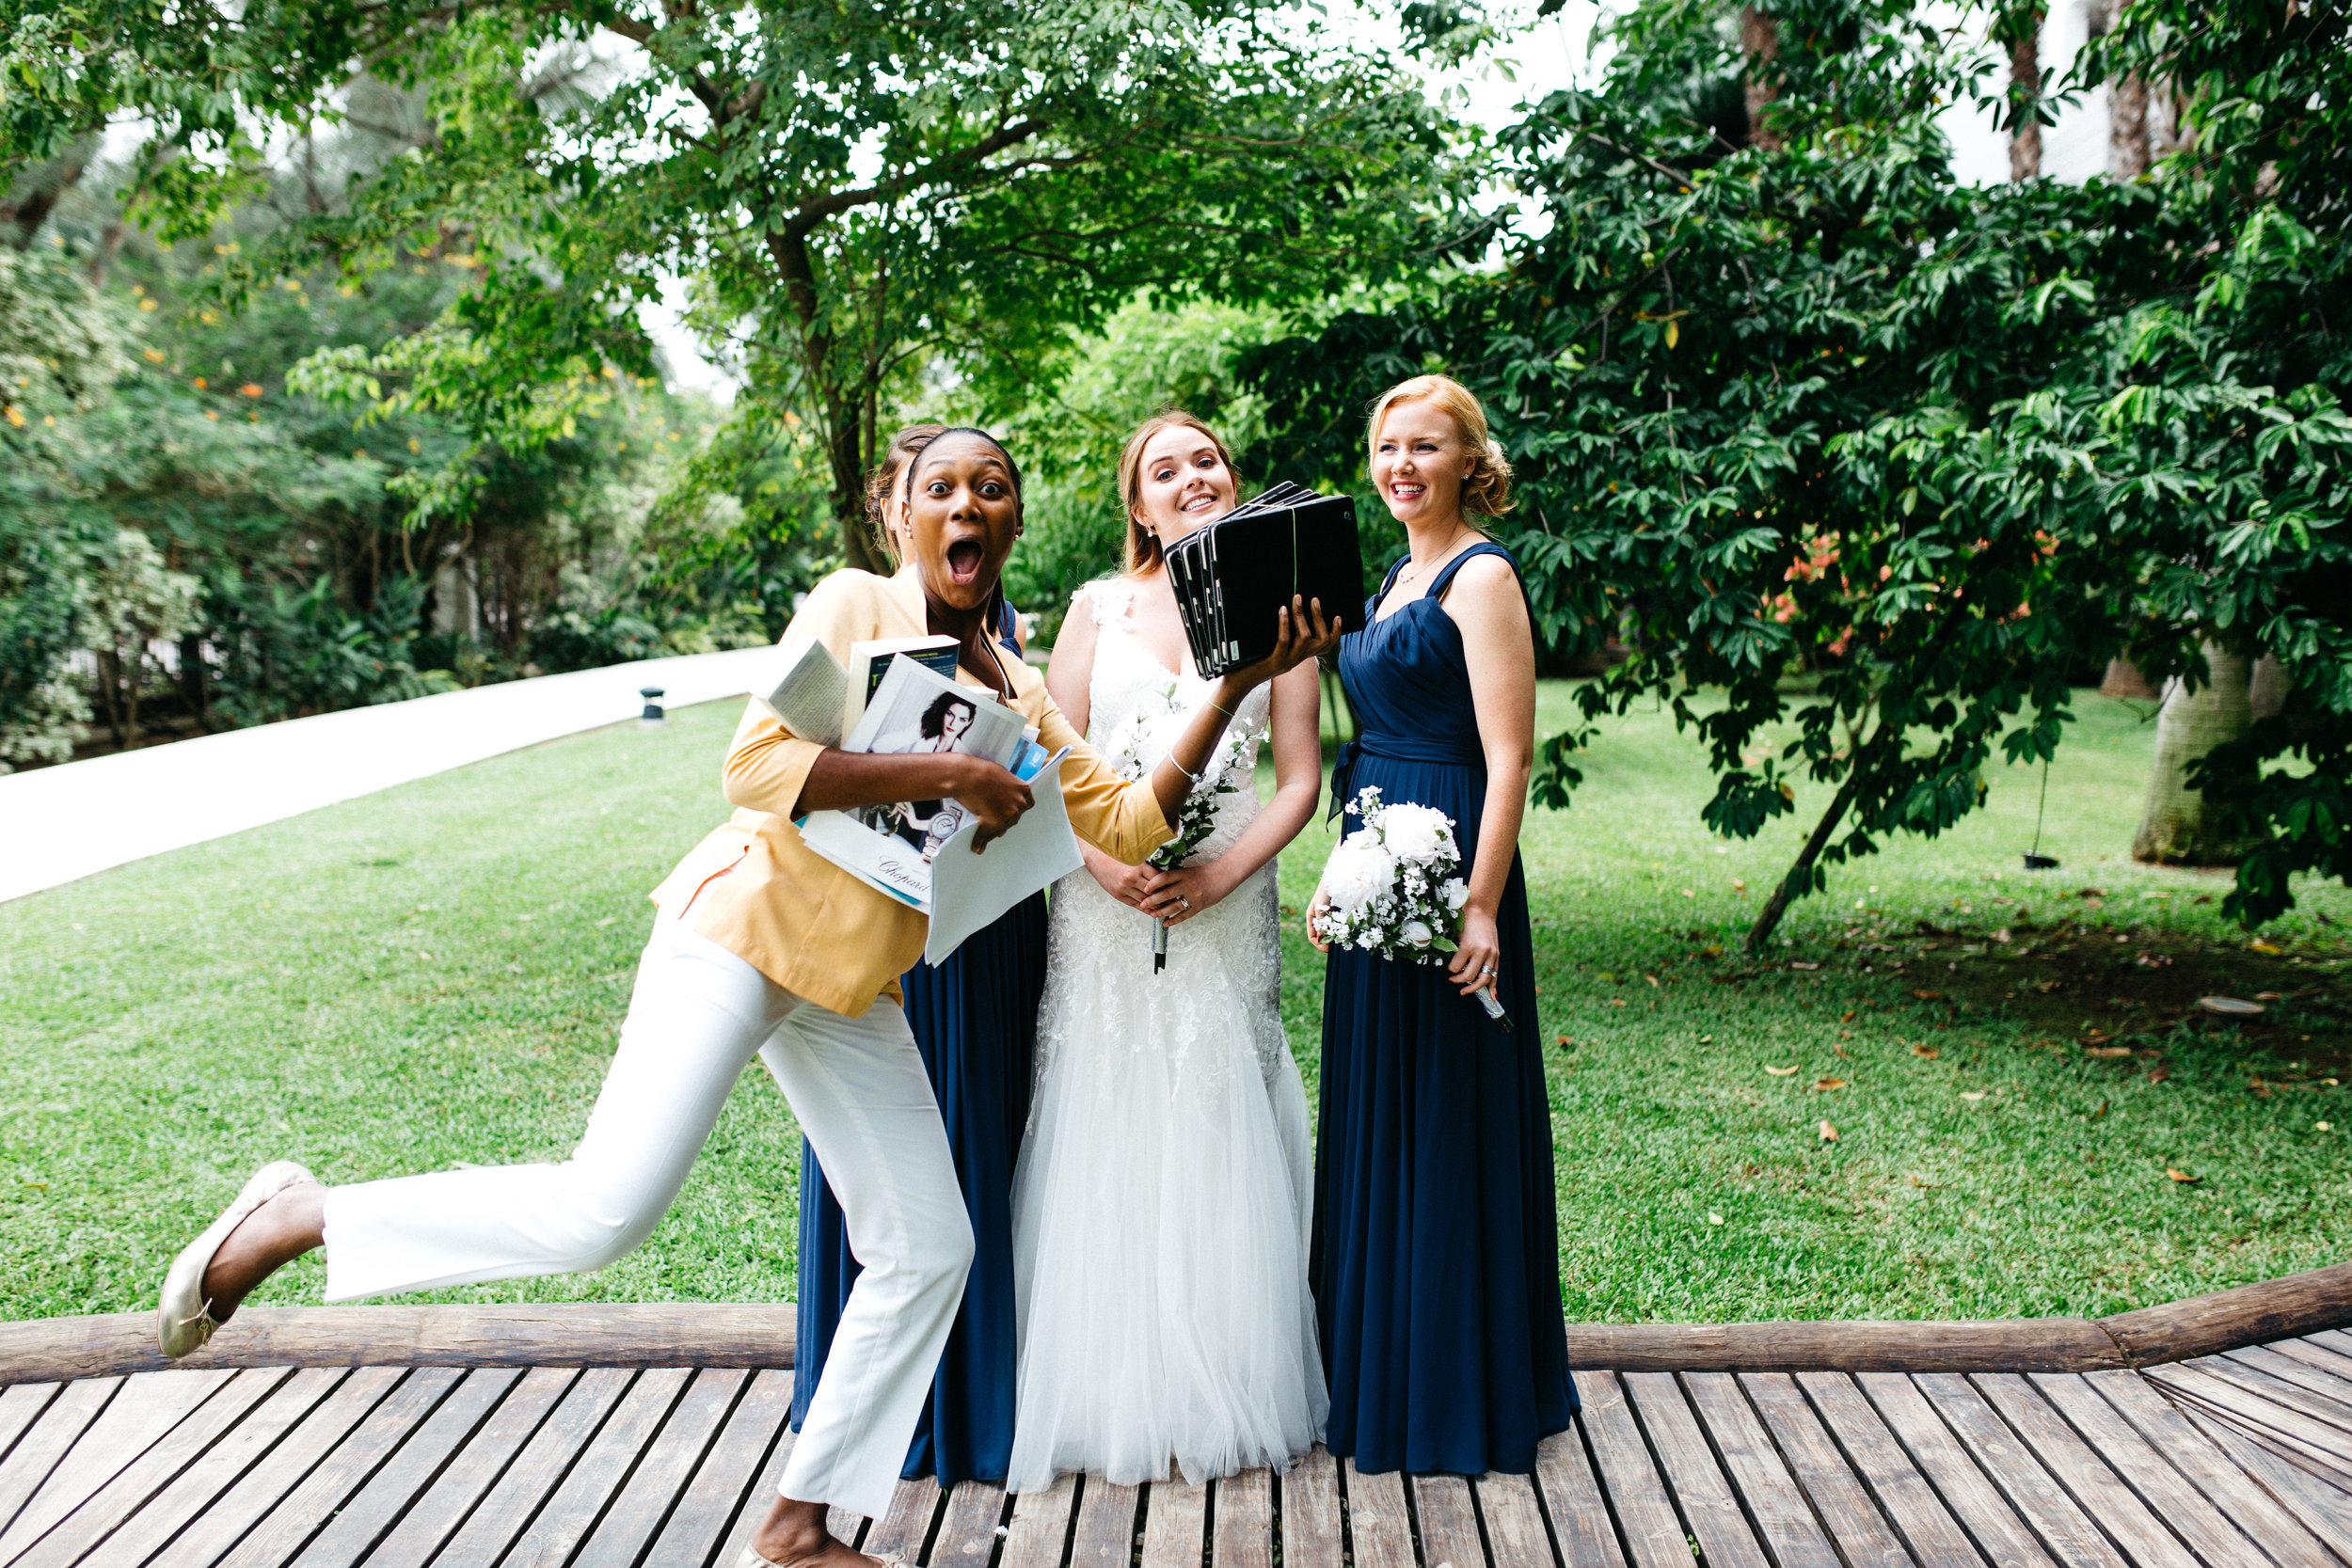 Photobombs happen. This might be the best one yet. She's the resort's wedding planner, and she completely rocked.